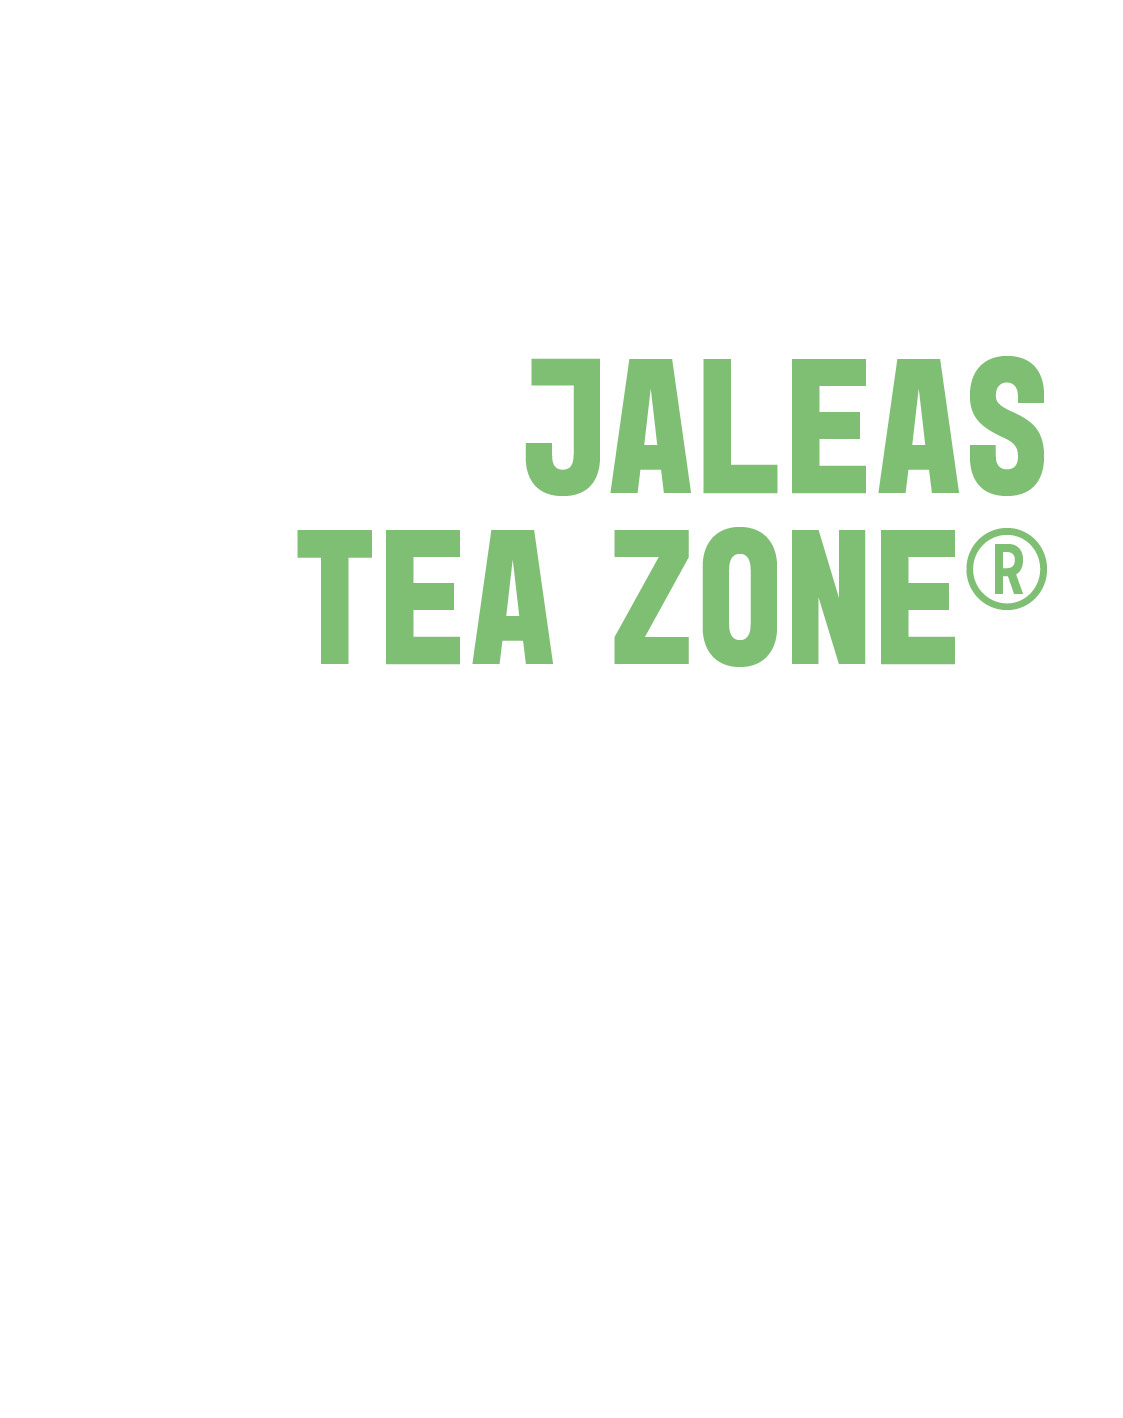 Jaleas Tea Zone